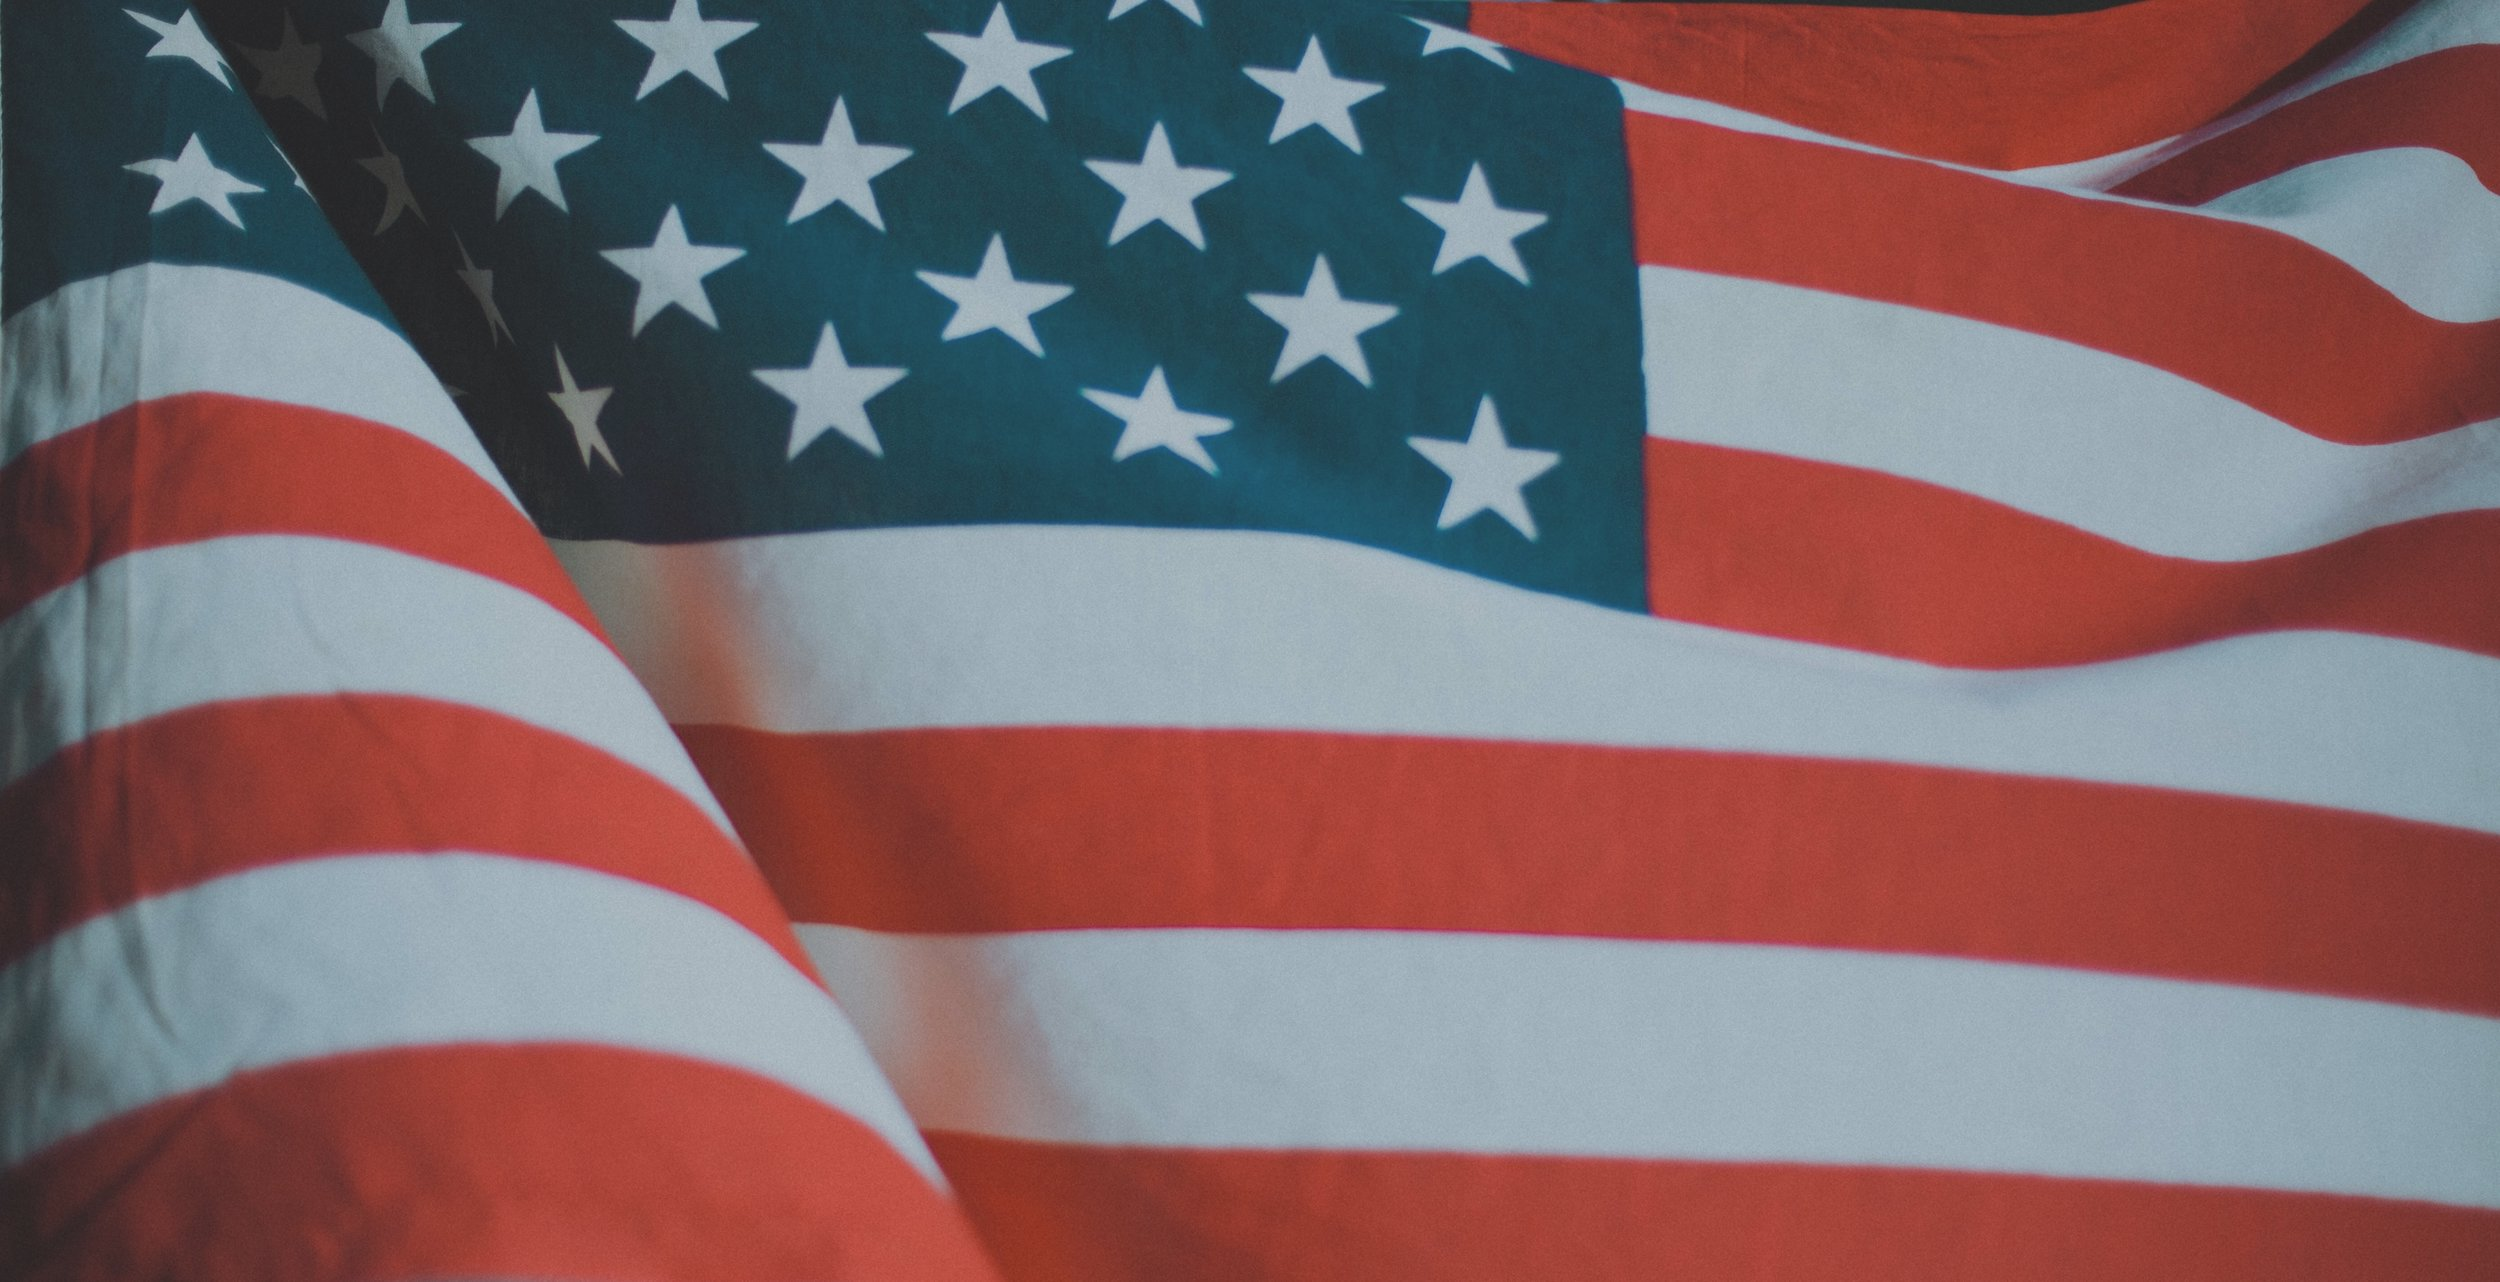 mission-hills-christian-church-los-angeles-why-our-church-does-not-have-an-american-flag-jpeg